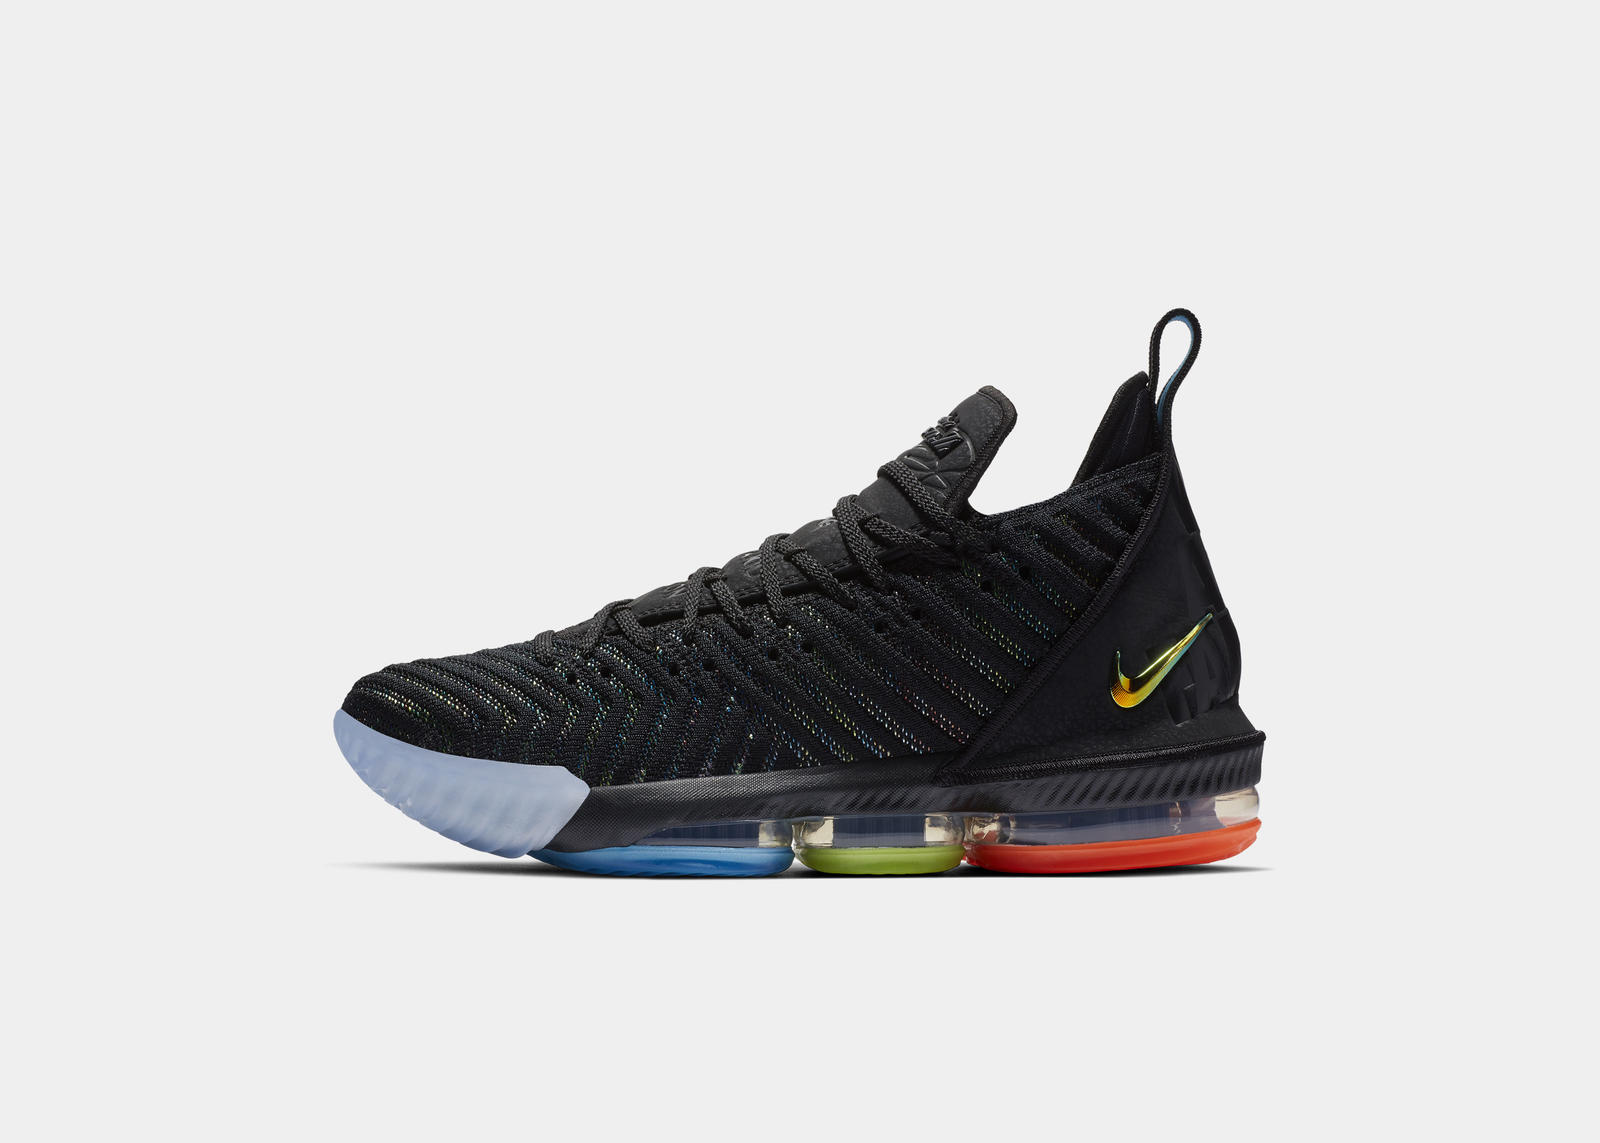 ba14c3d1d7e6 ... discount code for how to get the lebron 16 i promise 1 9a799 a949a